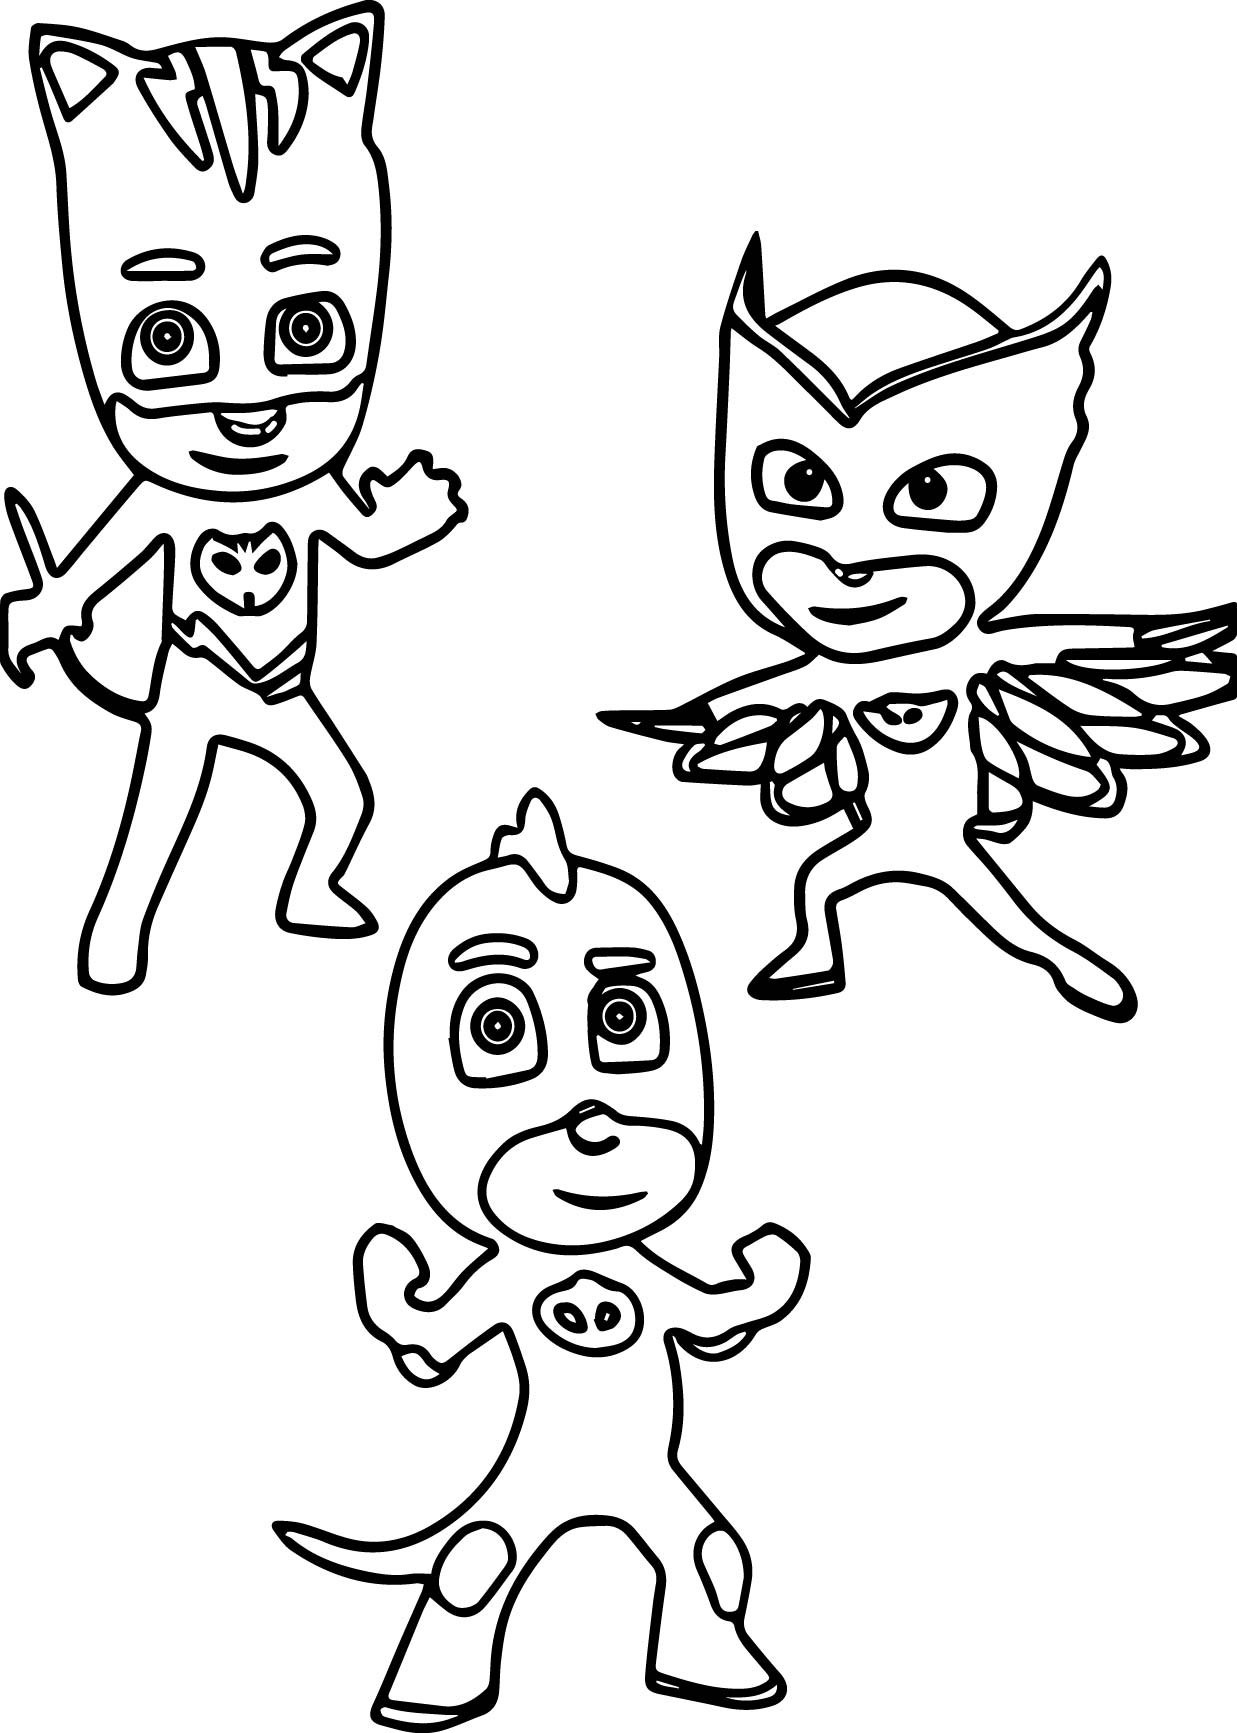 photo about Pj Masks Printable Coloring Pages named The most straightforward cost-free Catboy coloring site pictures. Obtain against 75